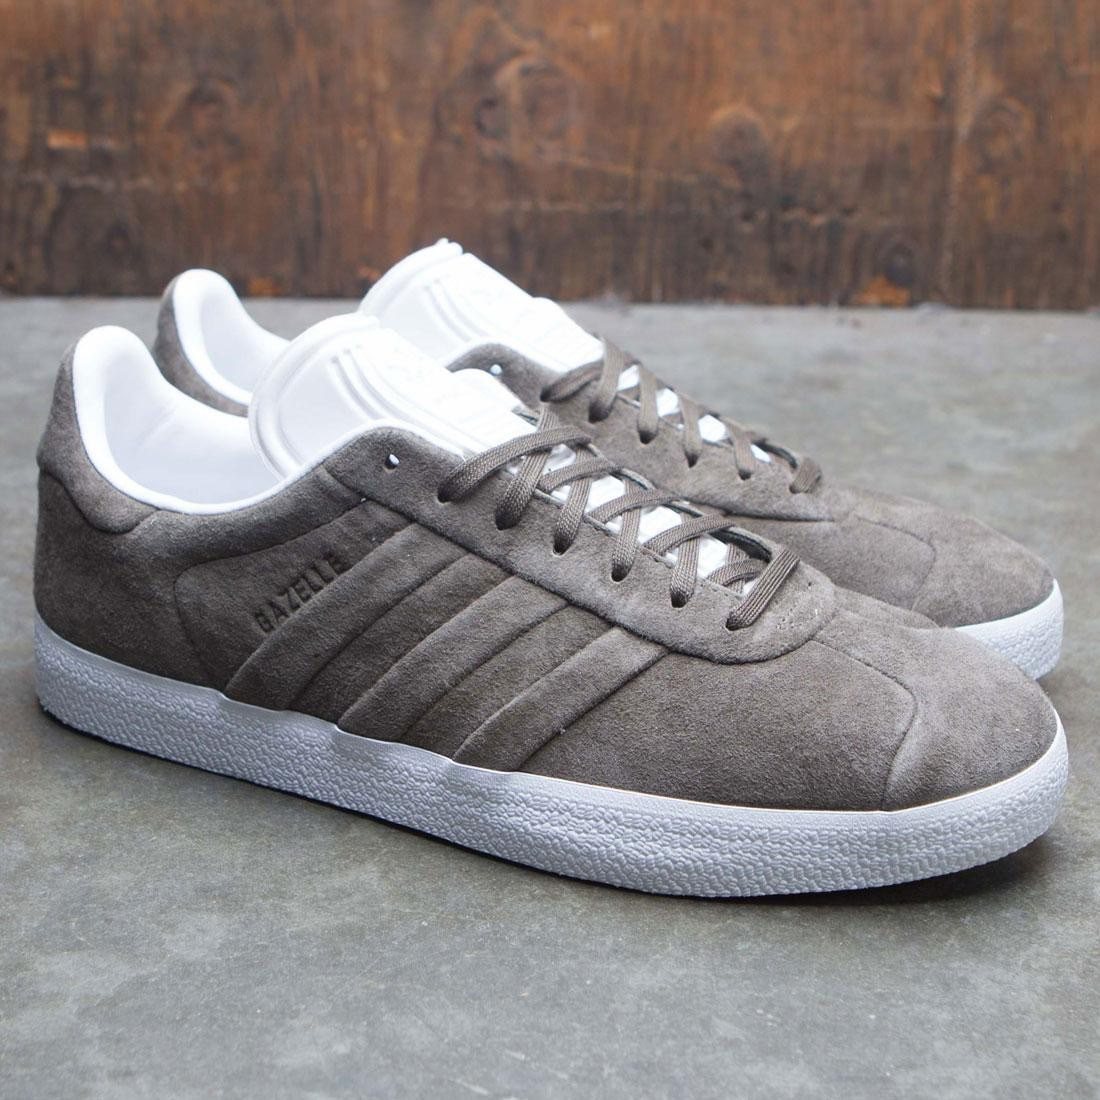 92dceaea9 Adidas Men Gazelle Stitch And Turn (olive / branch / footwear white)